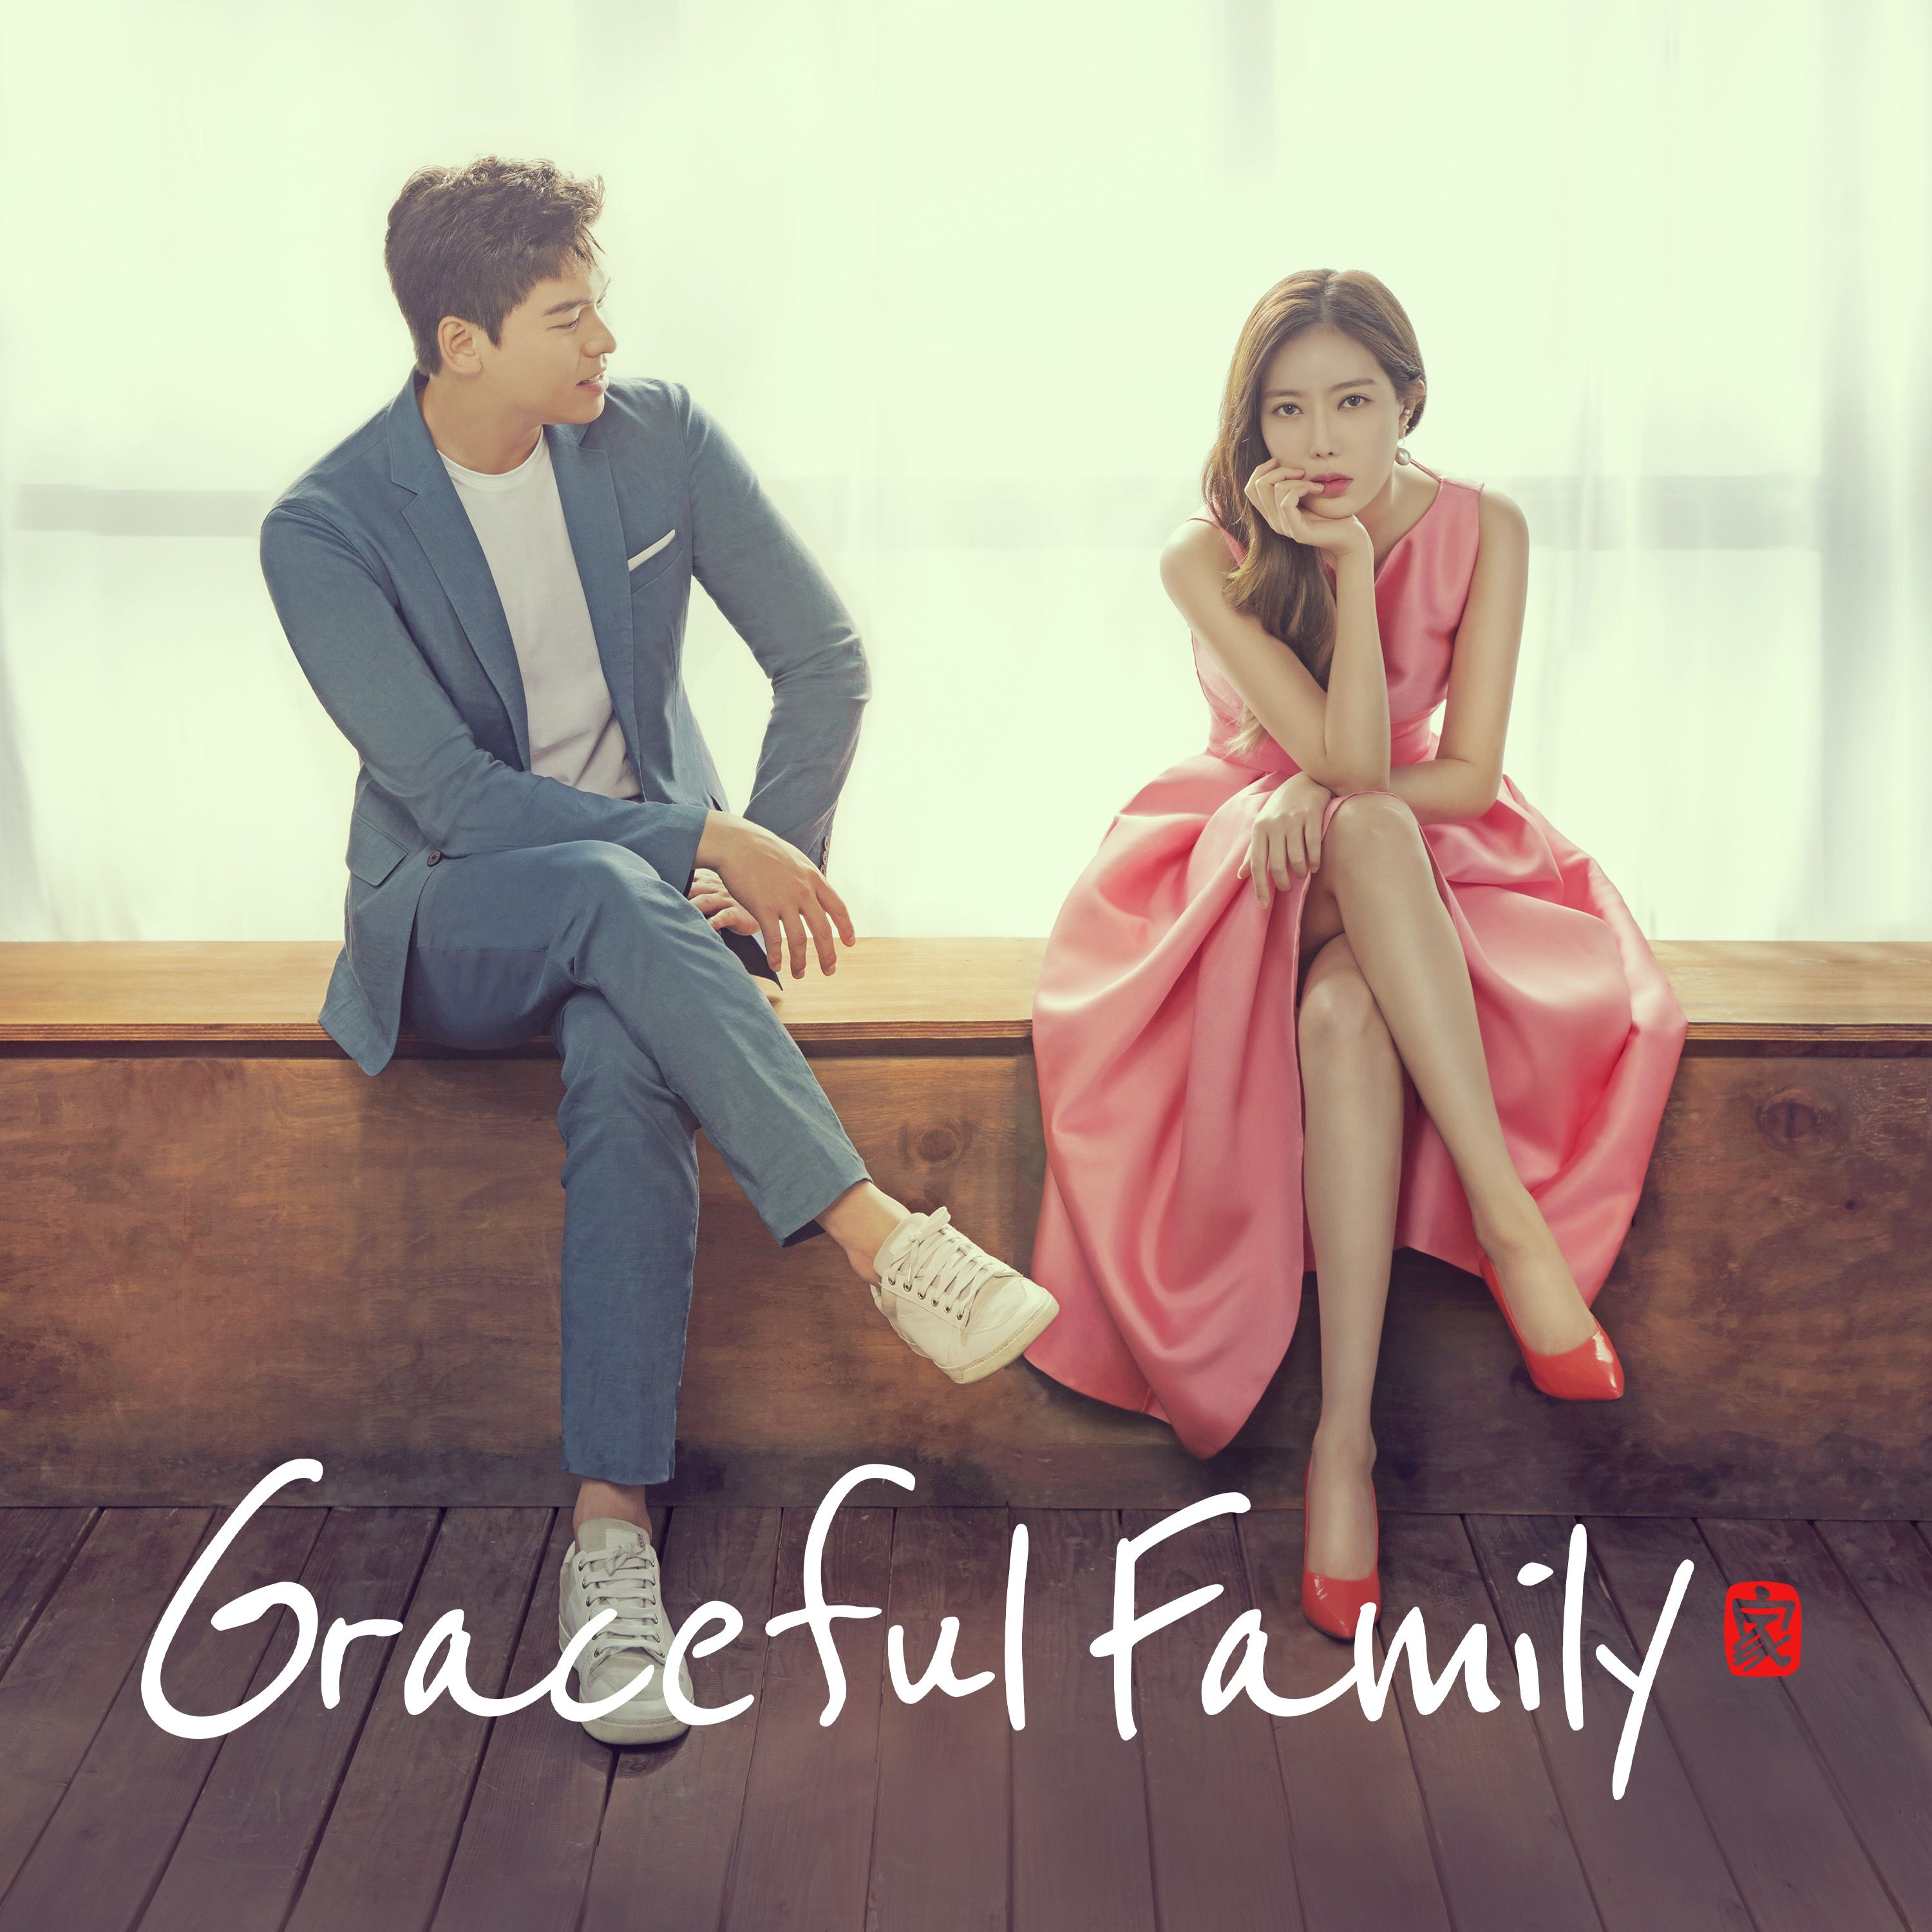 Episode 11 Preview: Graceful Family - 우아한가 - Watch full